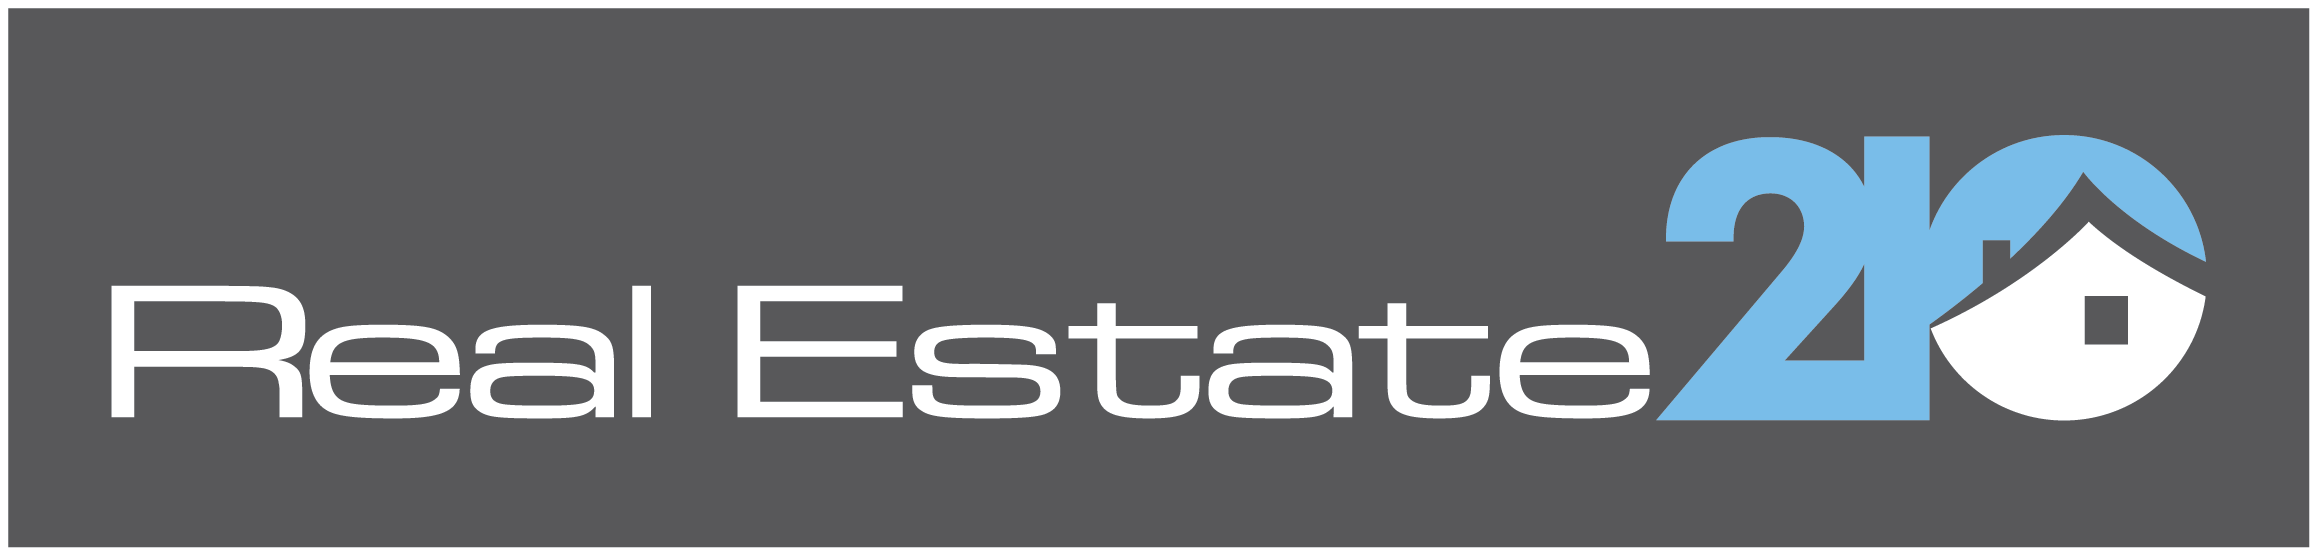 Real Estate 210 logo